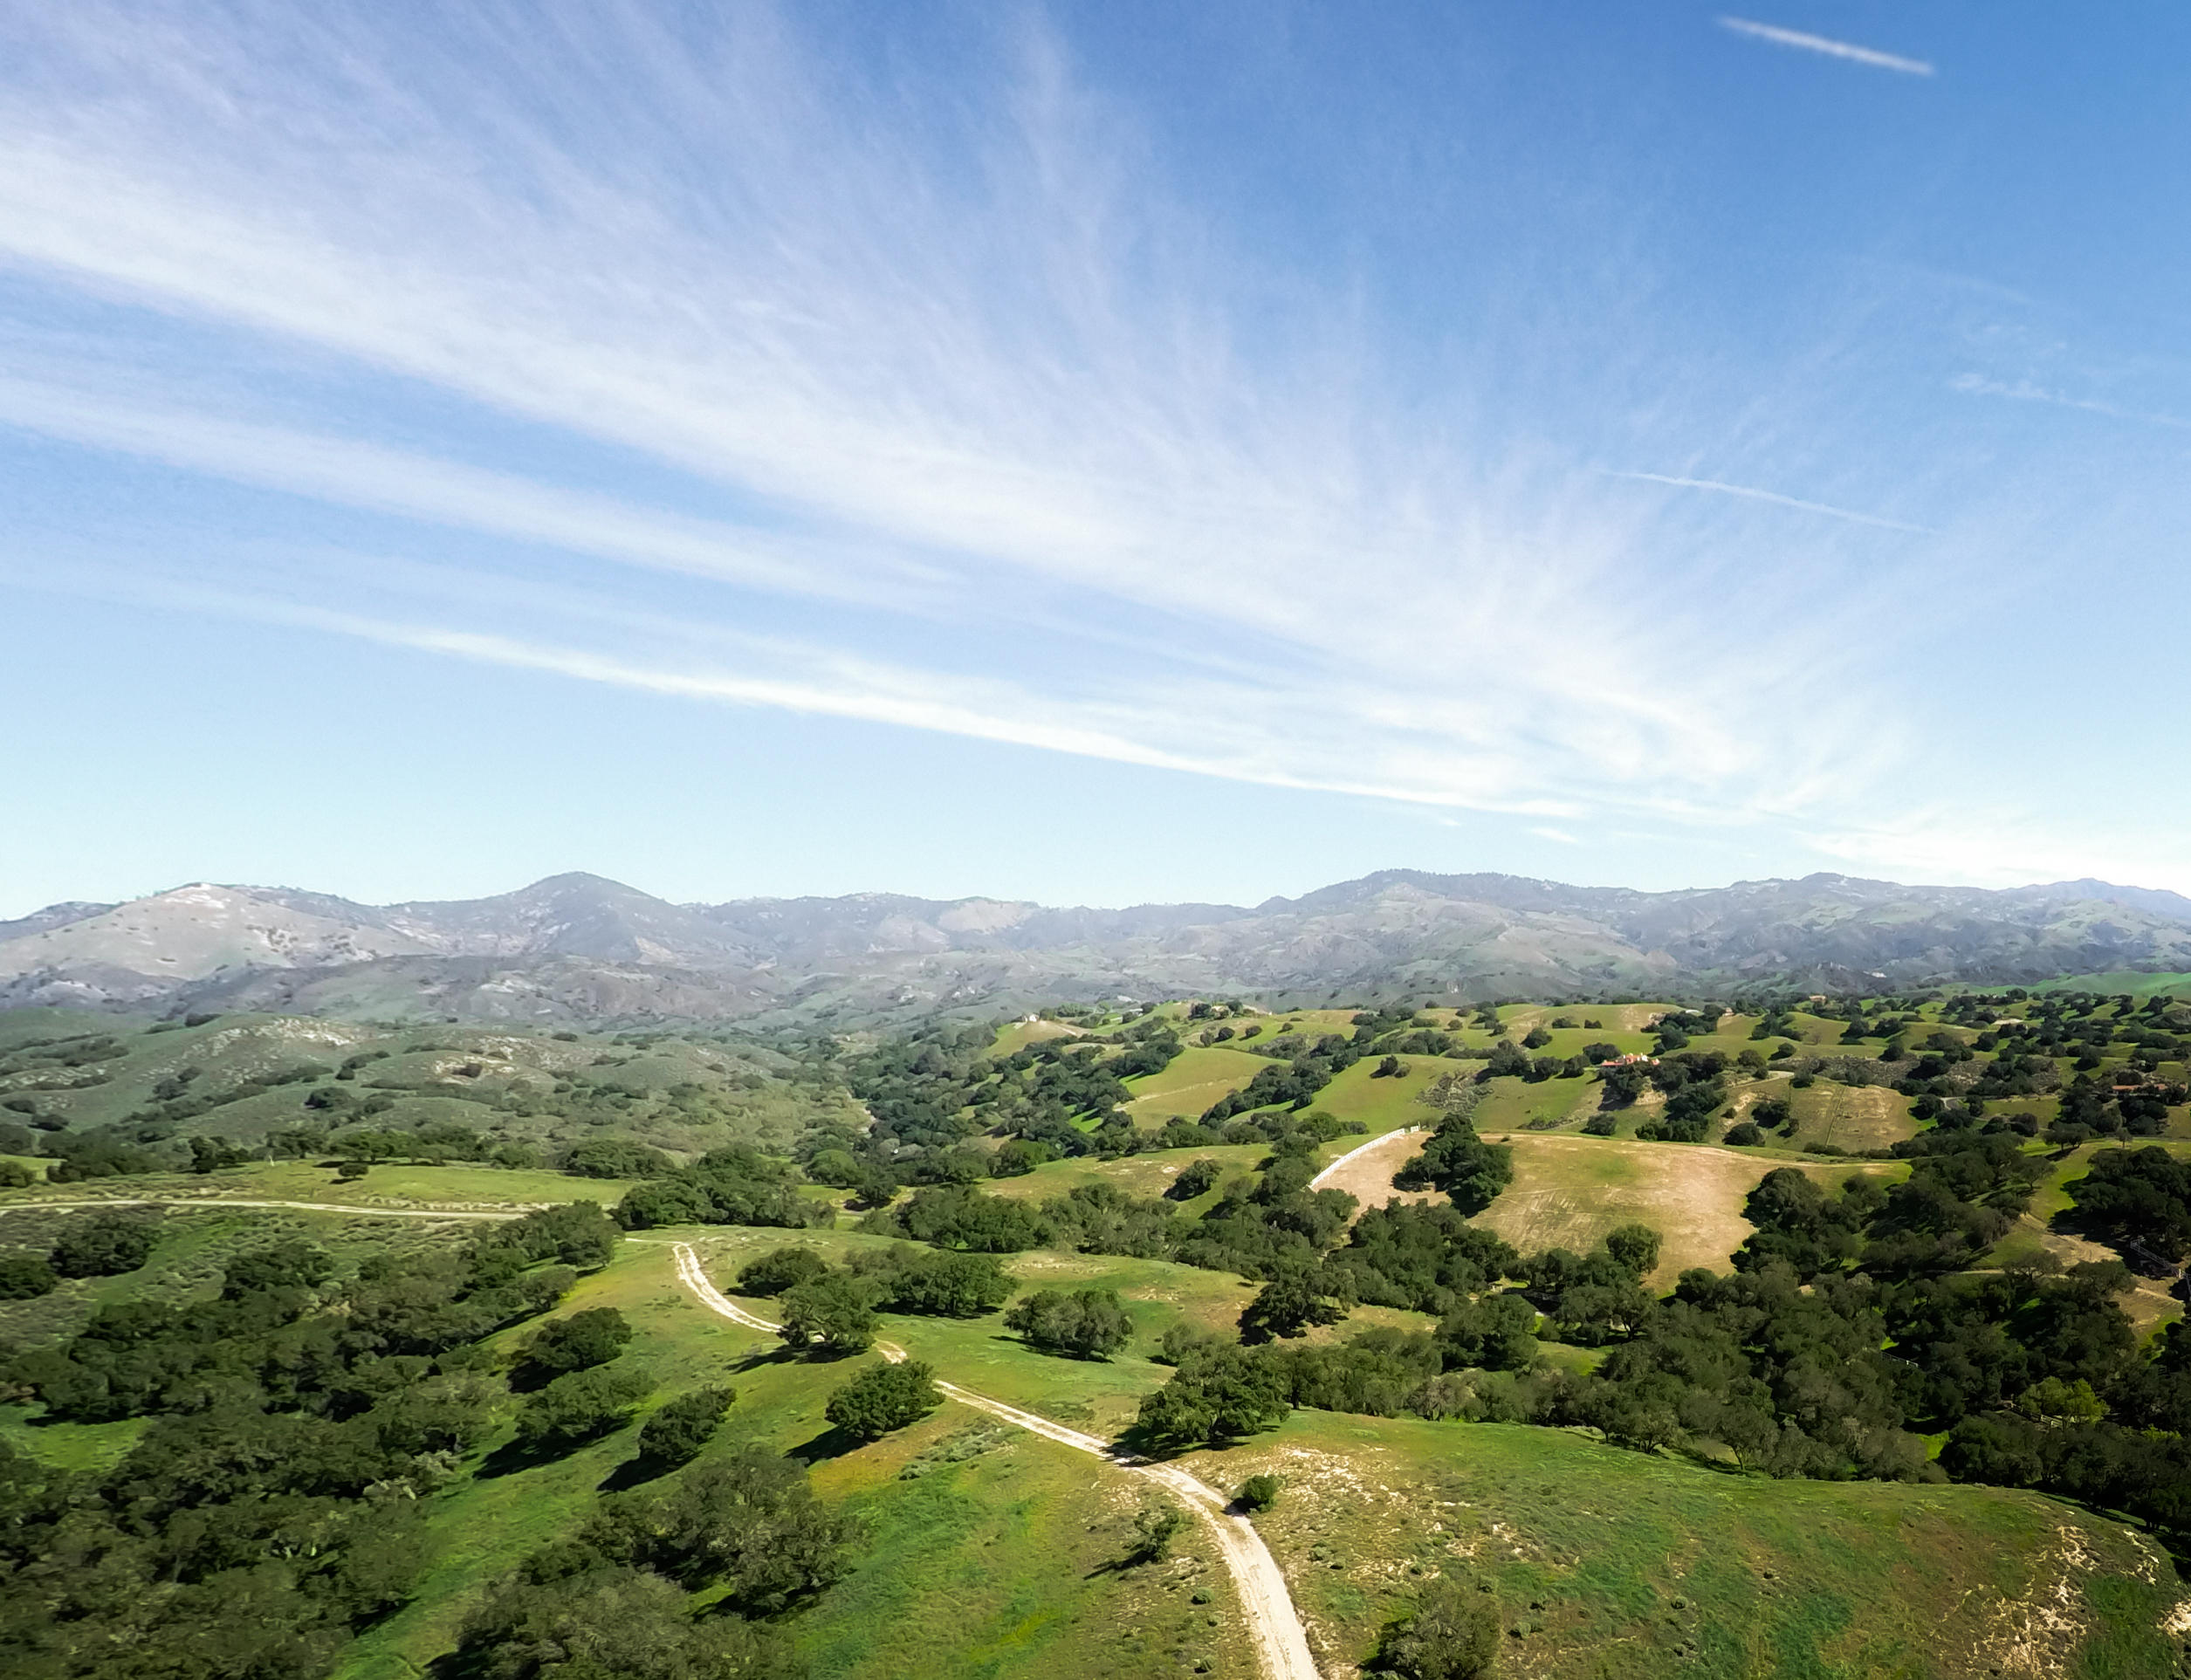 Property photo for E Oak Trail Ranch Road Santa Ynez, California 93460 - 13-2163